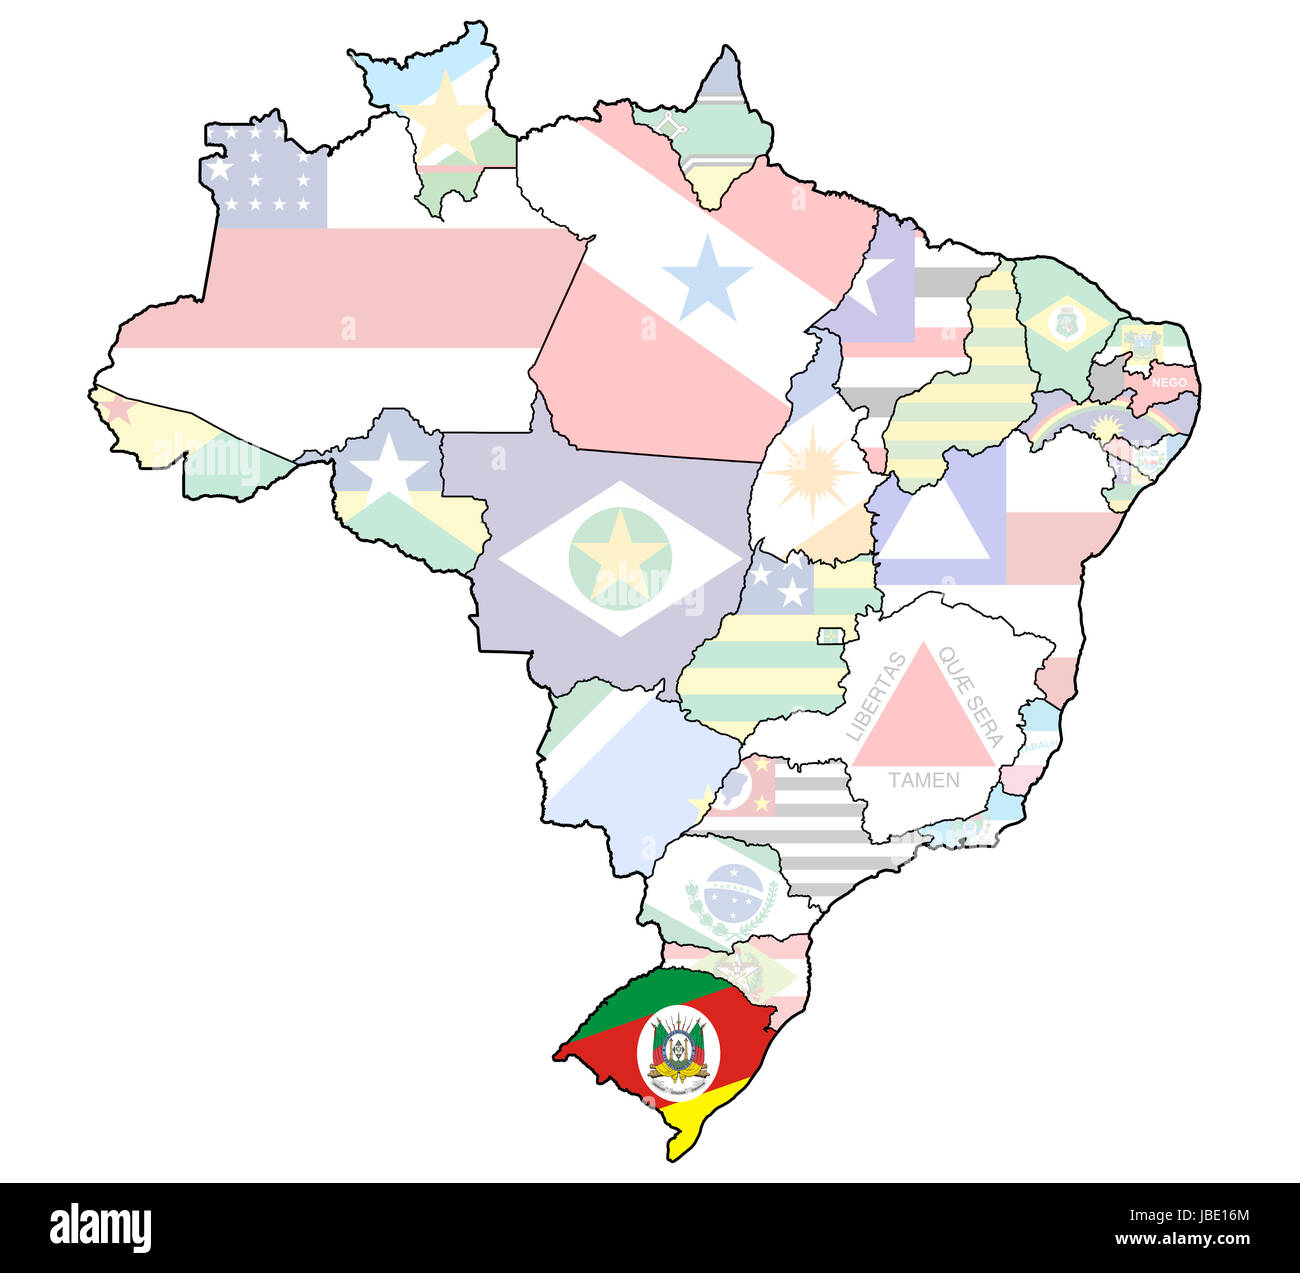 rio grande do sul on admistration map of brazil with flags Stock Photo